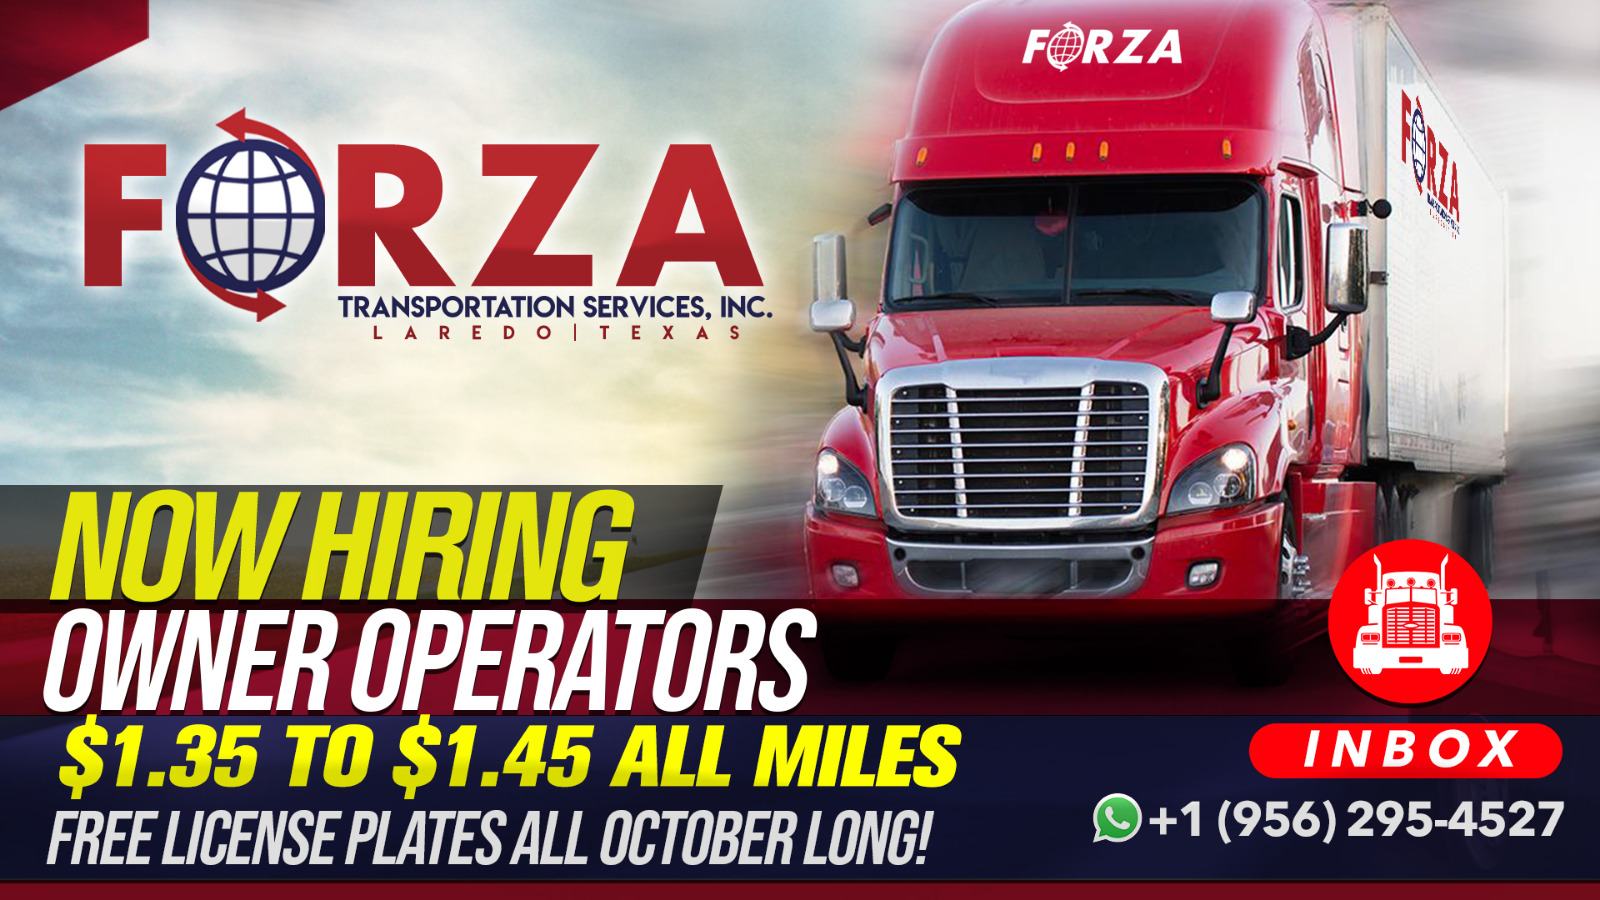 Now Hiring owner operators